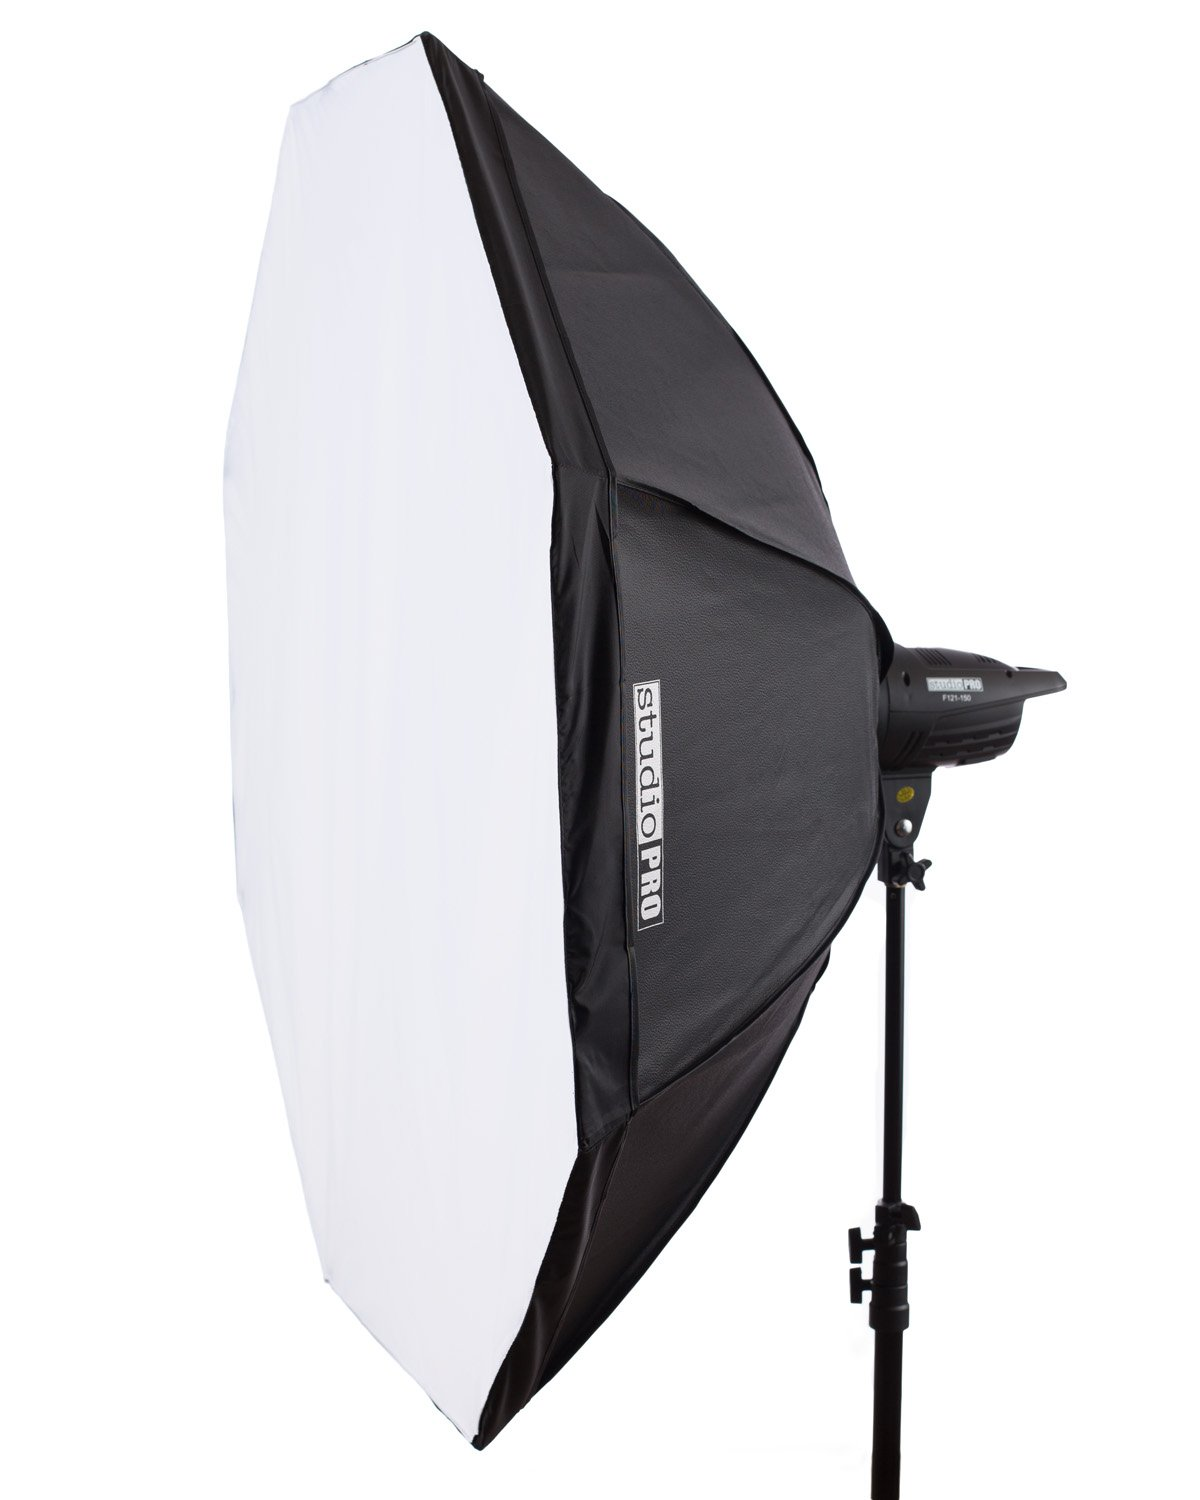 StudioPRO 68 Inch Octagon Softbox Photography Light Diffuser & Modifier with Bowens Speedring Mount For Monolight Photo Studio Strobe Lighting